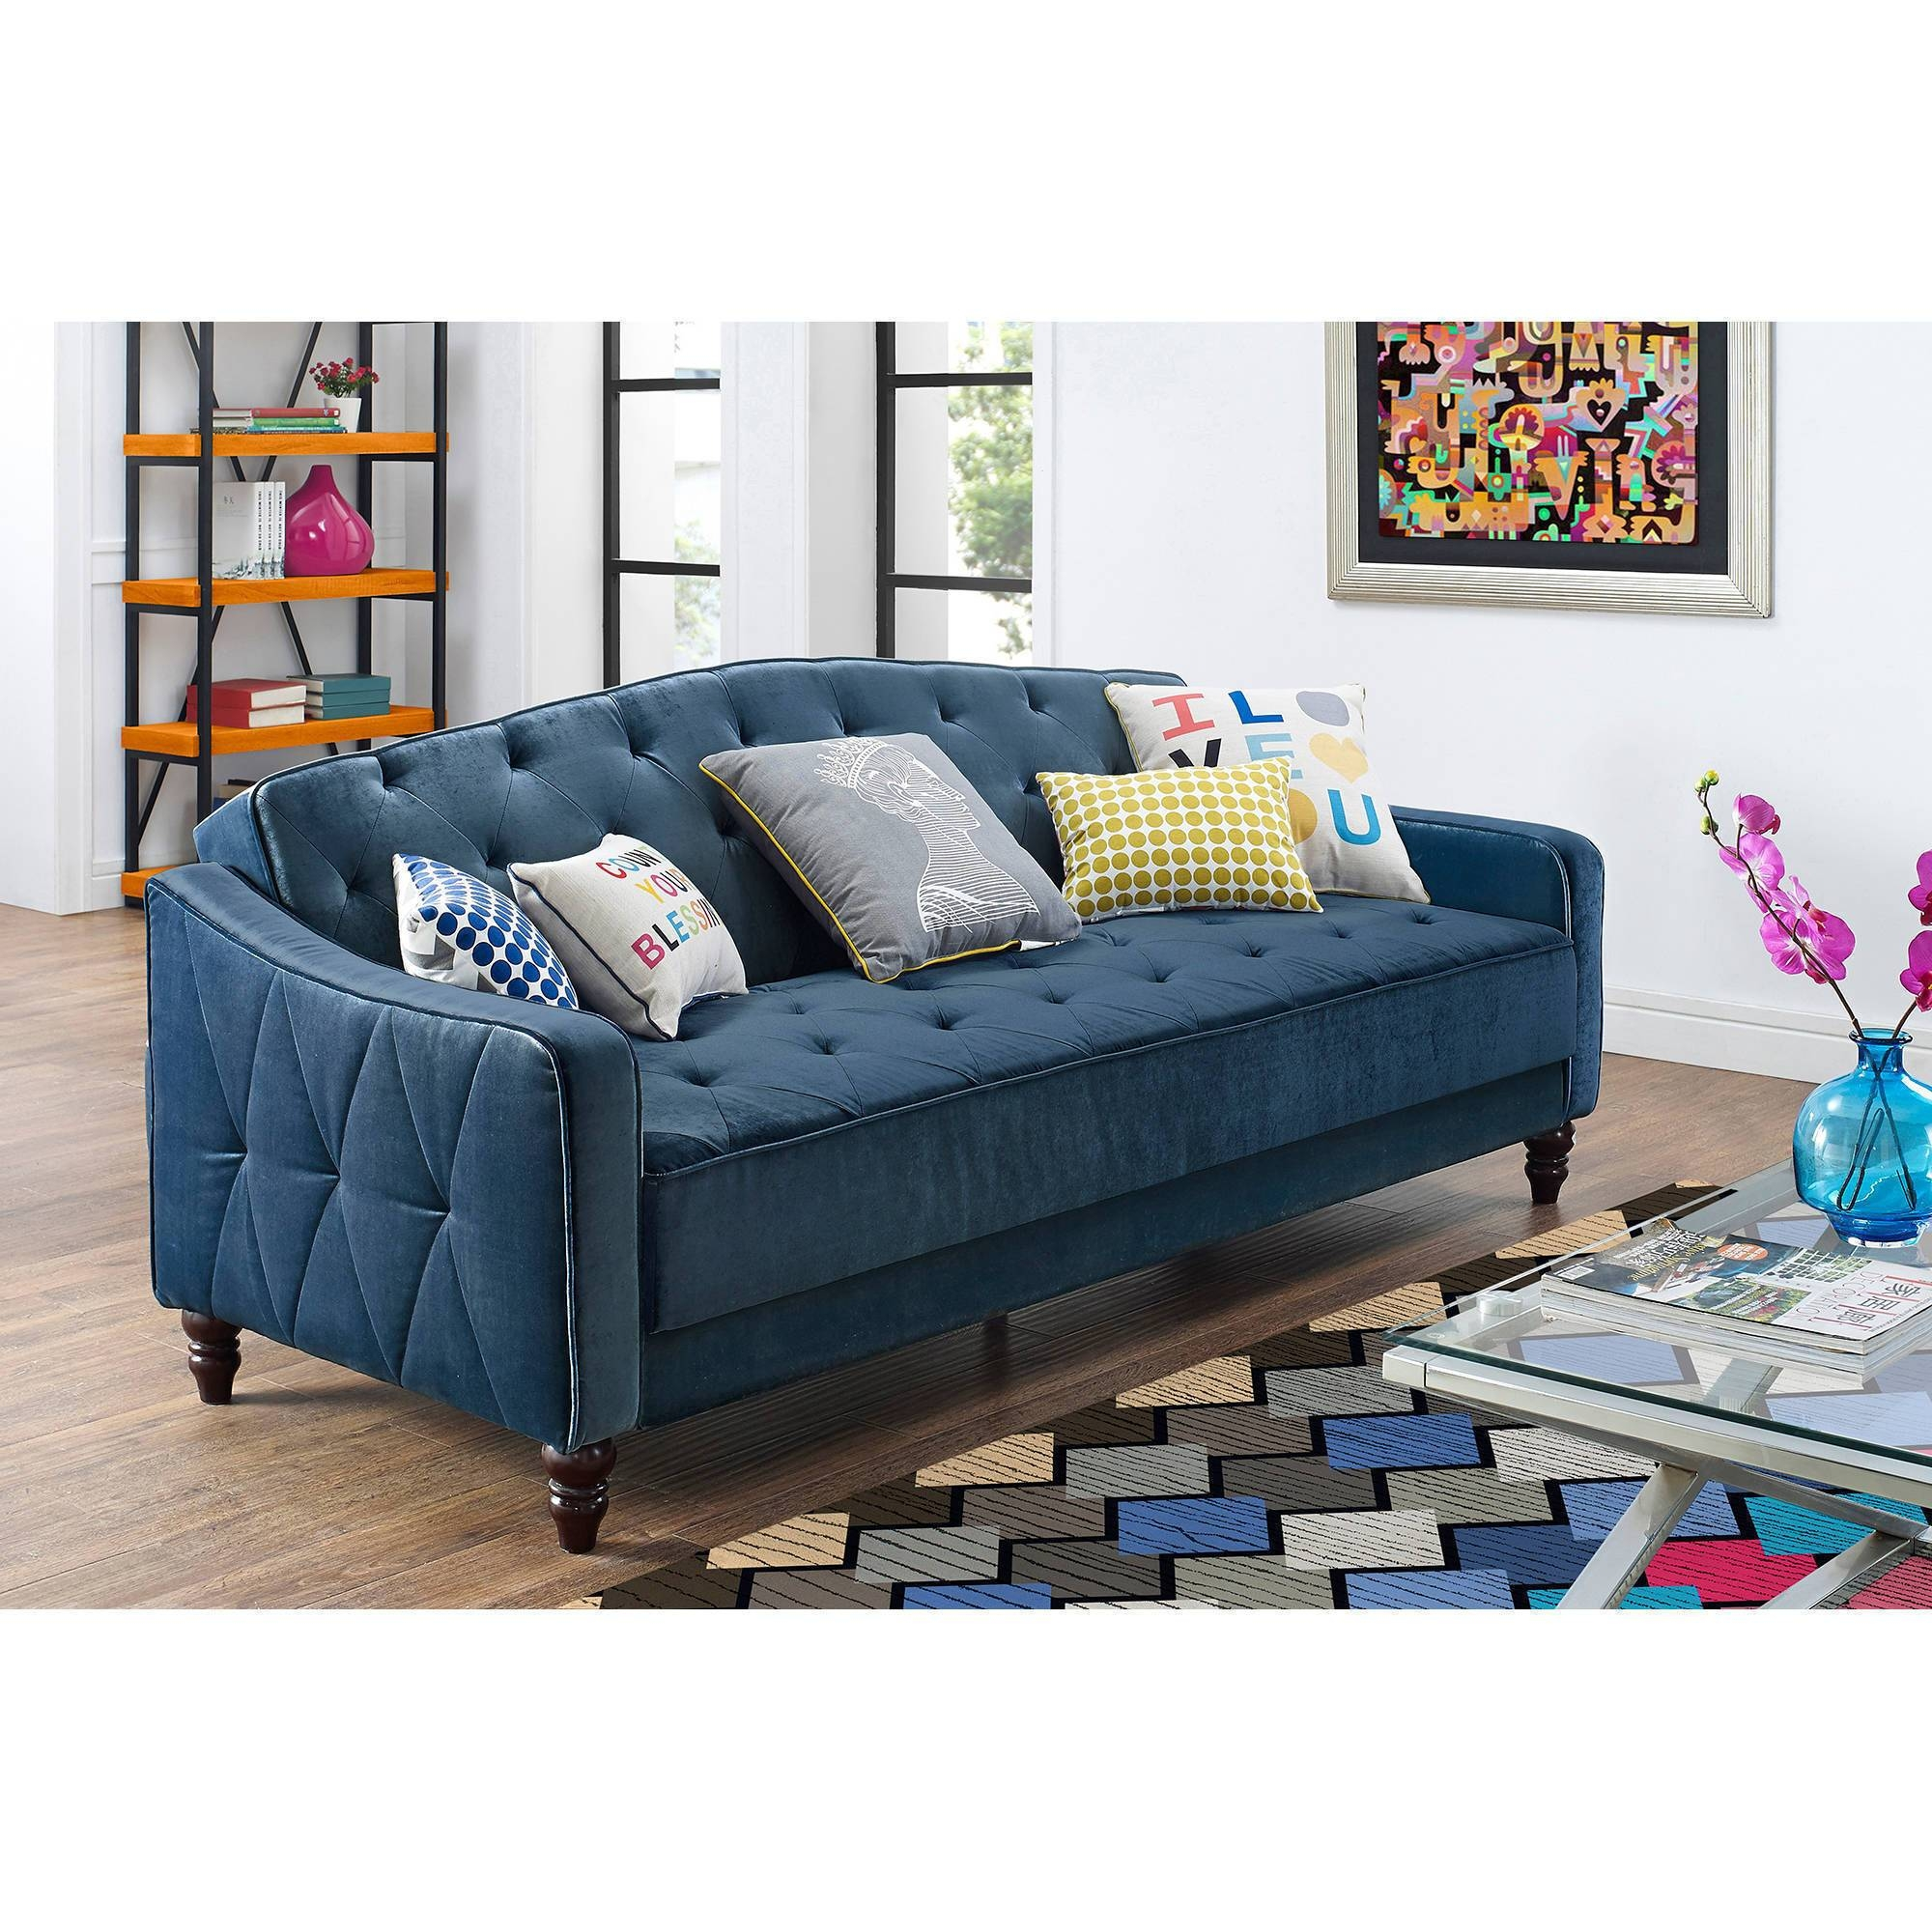 Futons, Futon Beds, Sofa Beds - Walmart inside Affordable Tufted Sofa (Image 19 of 30)